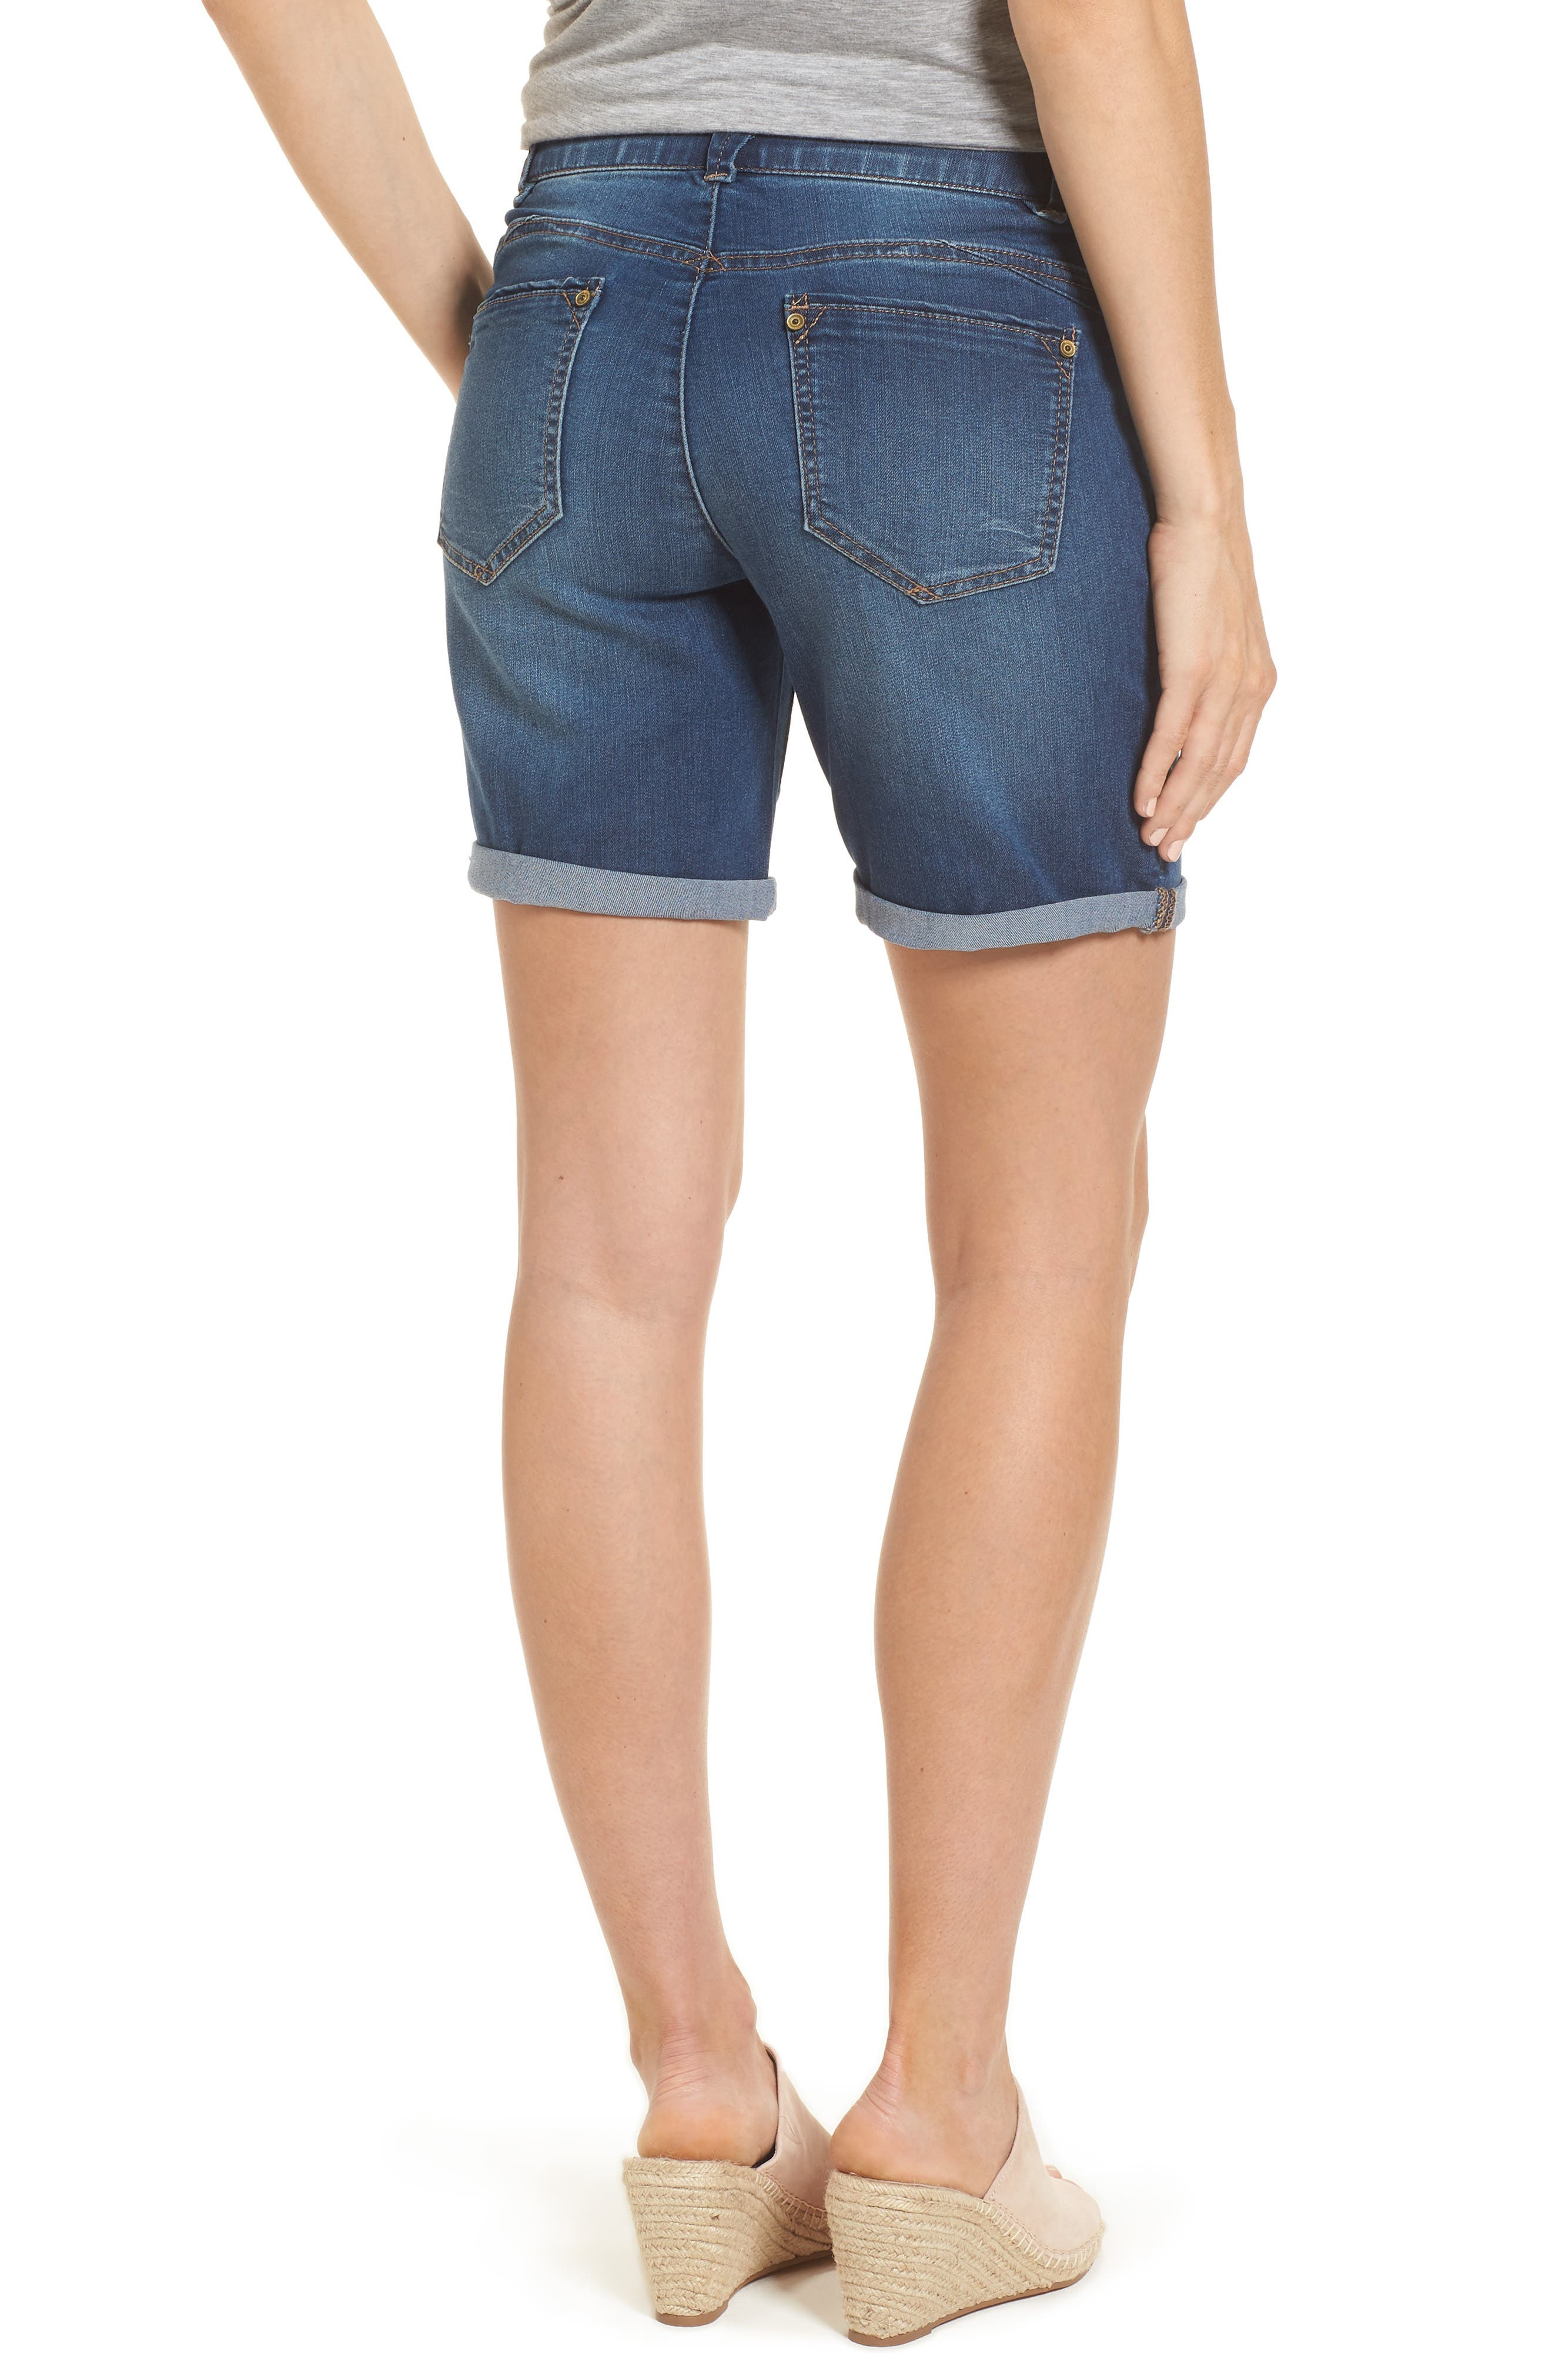 Ab-solution Cuffed Denim Shorts,                             Alternate thumbnail 2, color,                             420